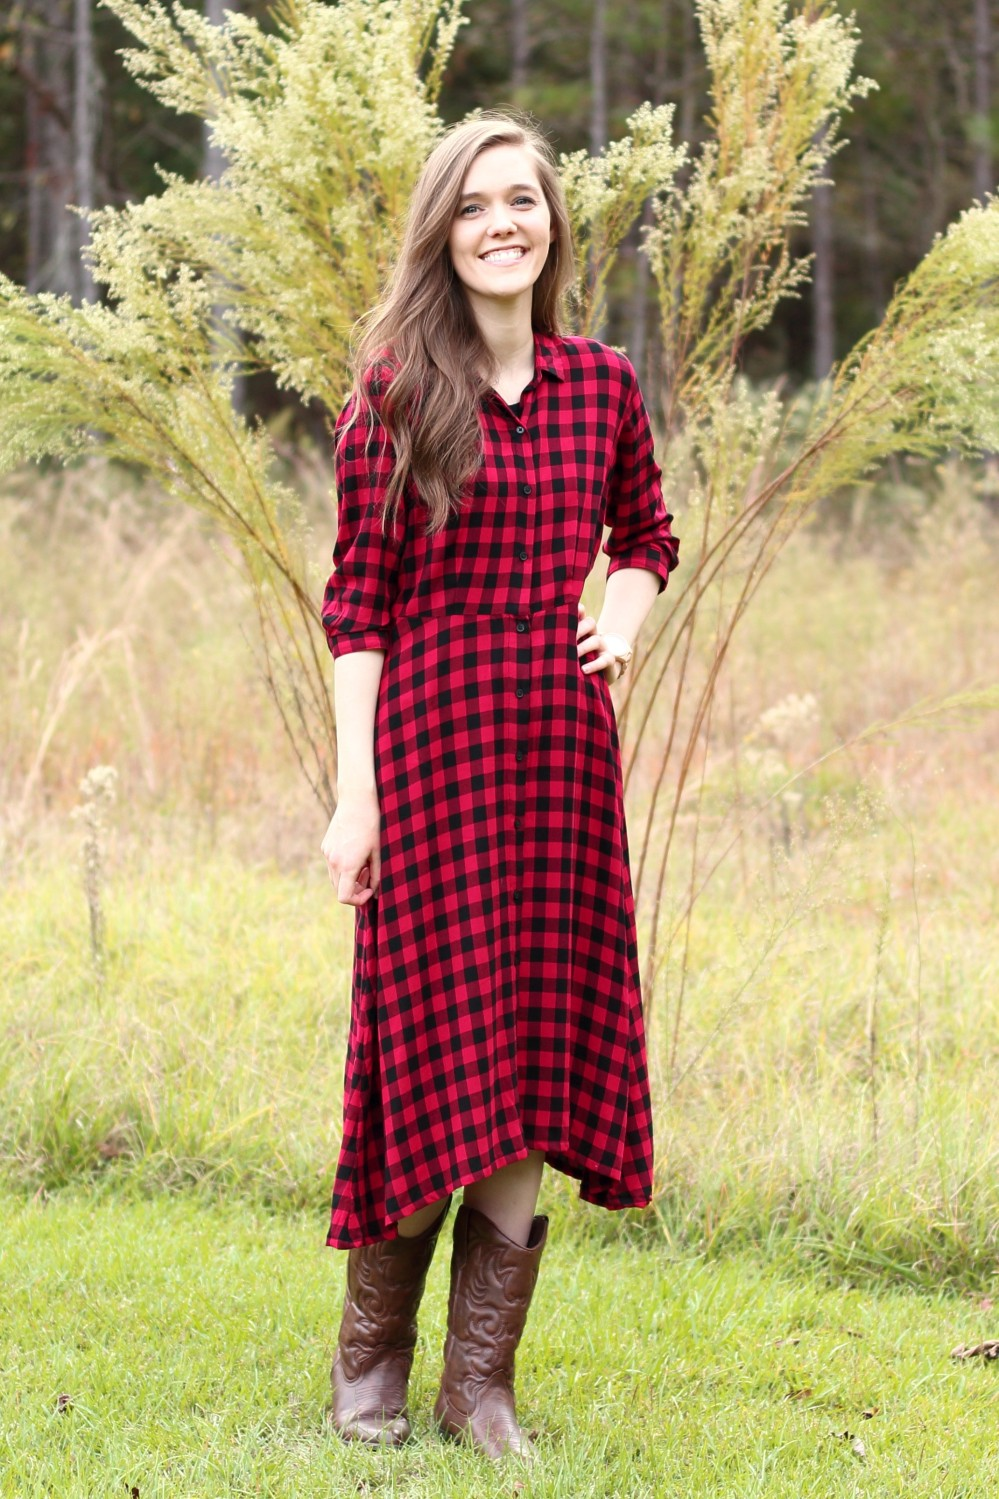 Modest Dressy Casual Outfit Idea for Church//Red and Black Buffalo Plaid Dress//Cowboy Boots//Fall/Winter Style Inspiration//Christmas//Simple//Comfy//Country//Pretty//Feminine//Modern//